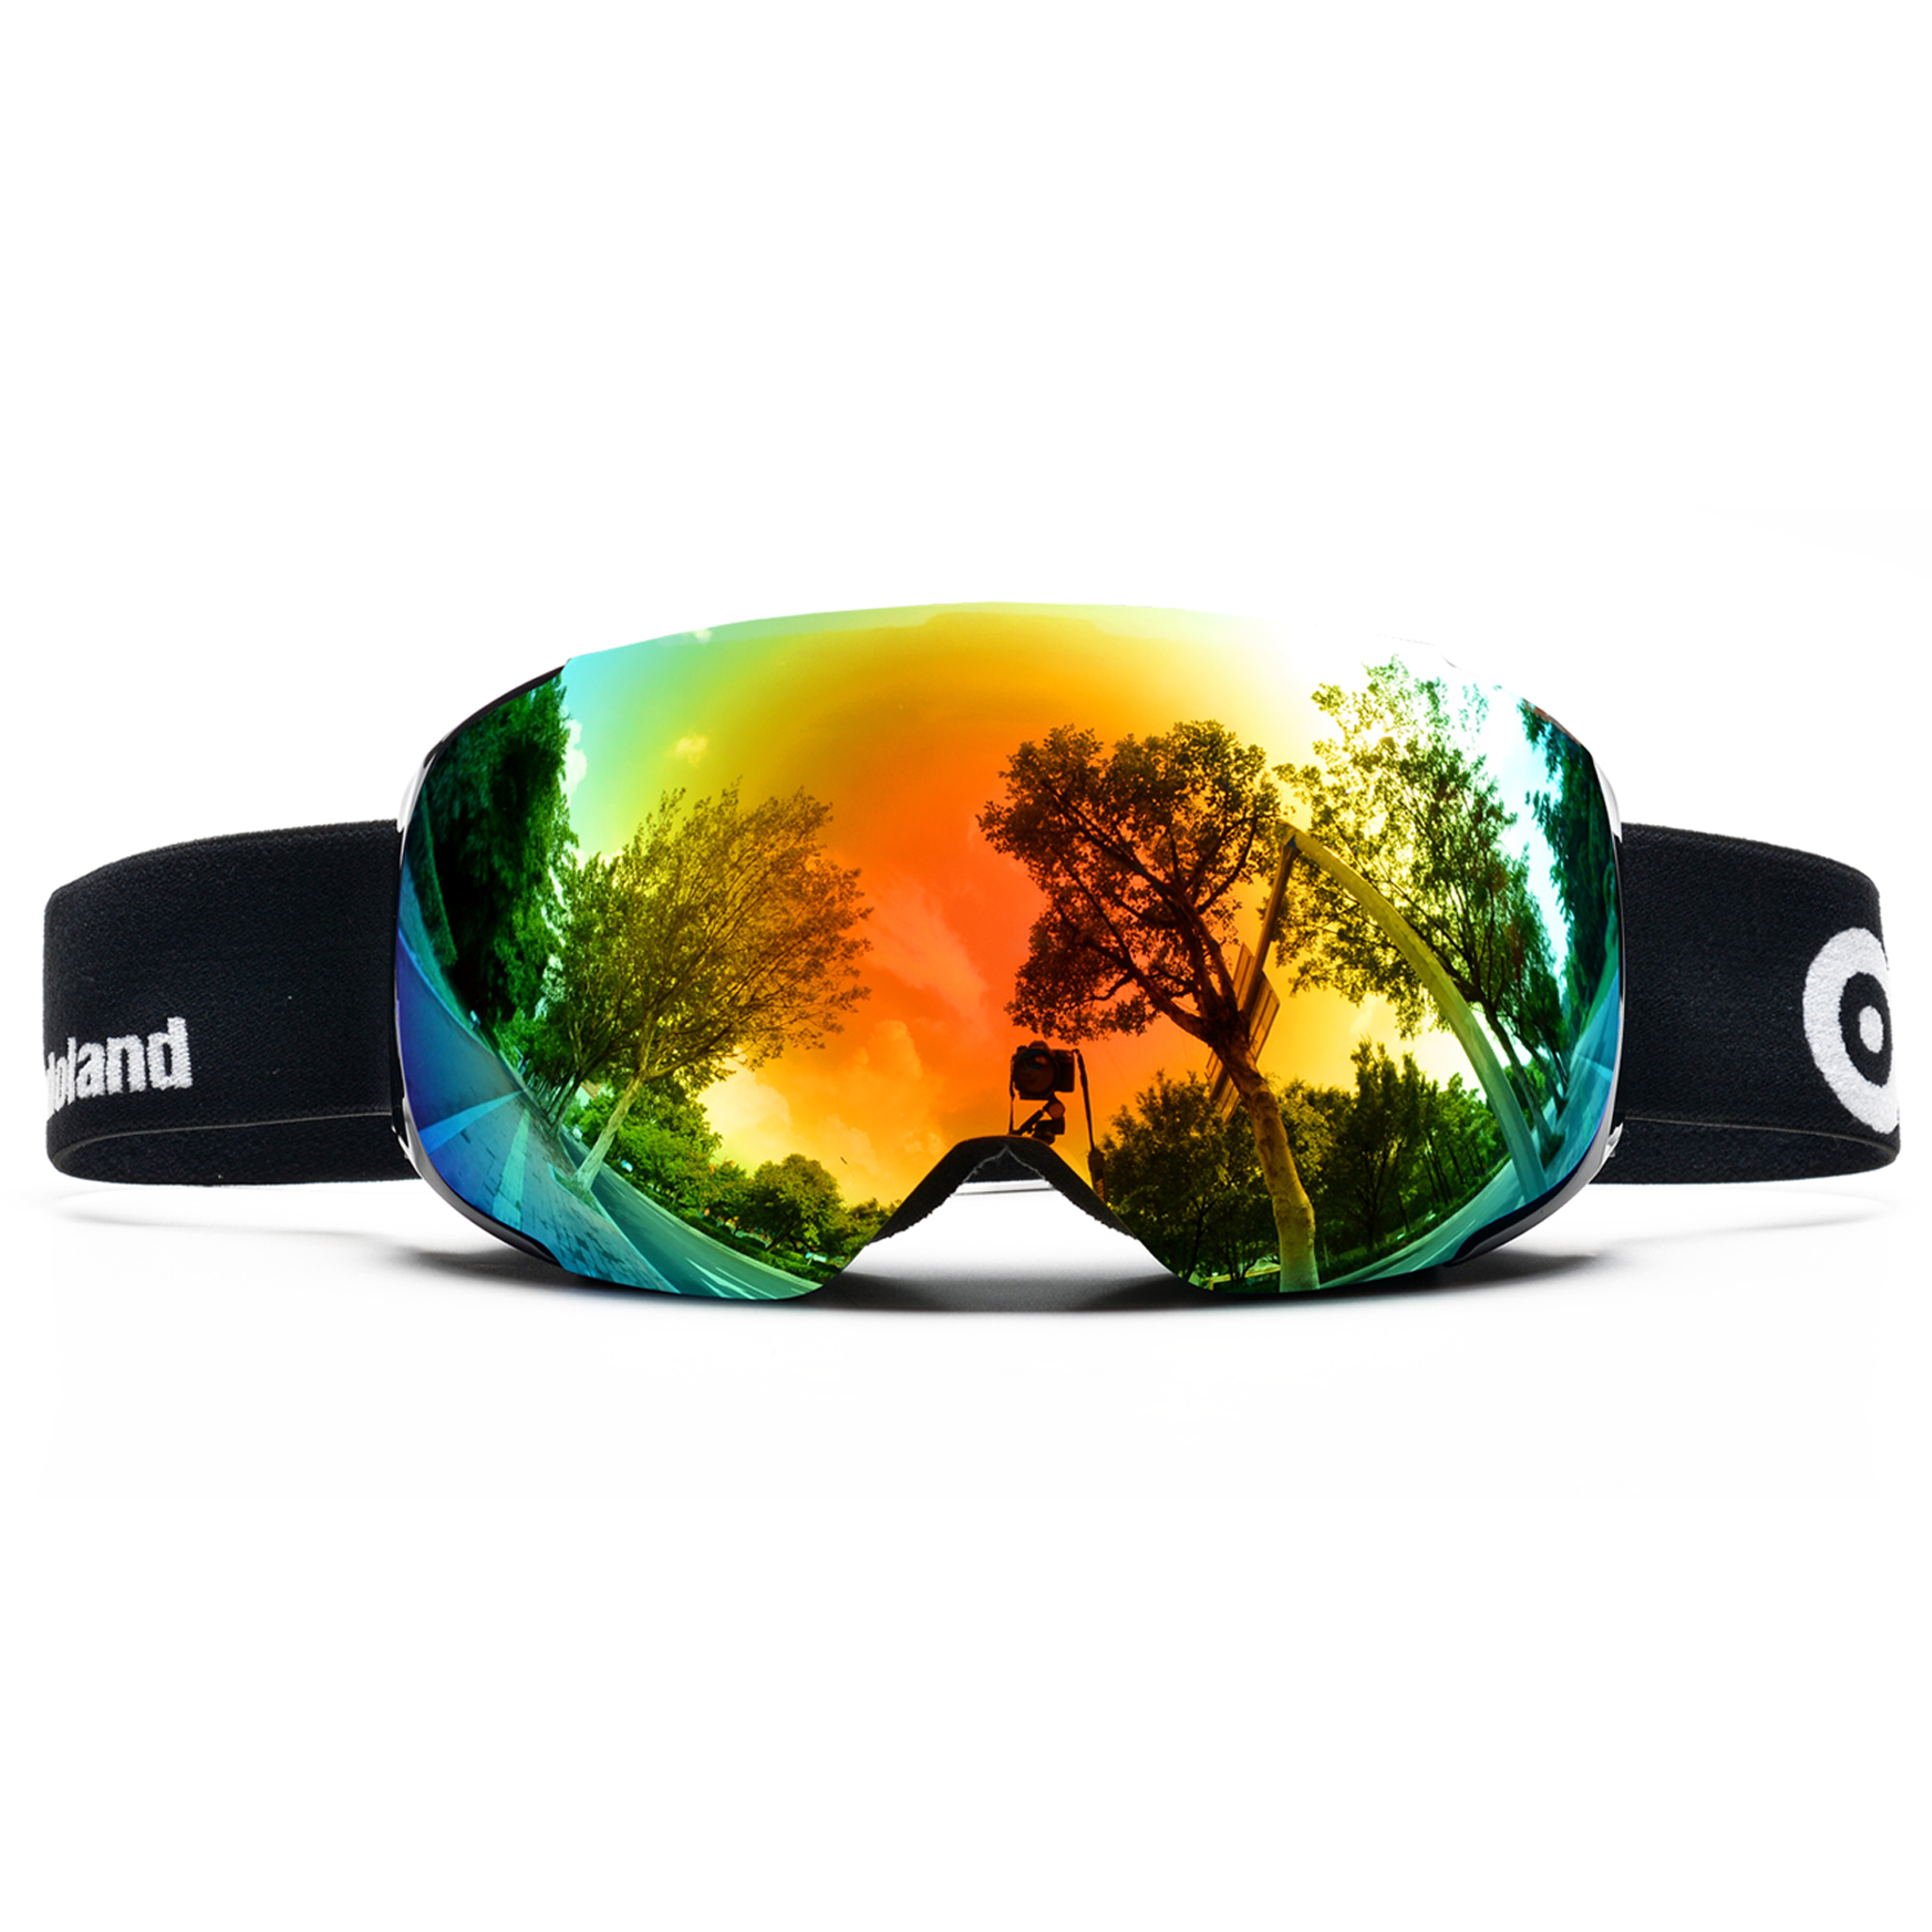 ODOLAND Ski Goggles w  Magnetic Detachable Lens UV400 Protection Mirror and Anti-Fog Lens by